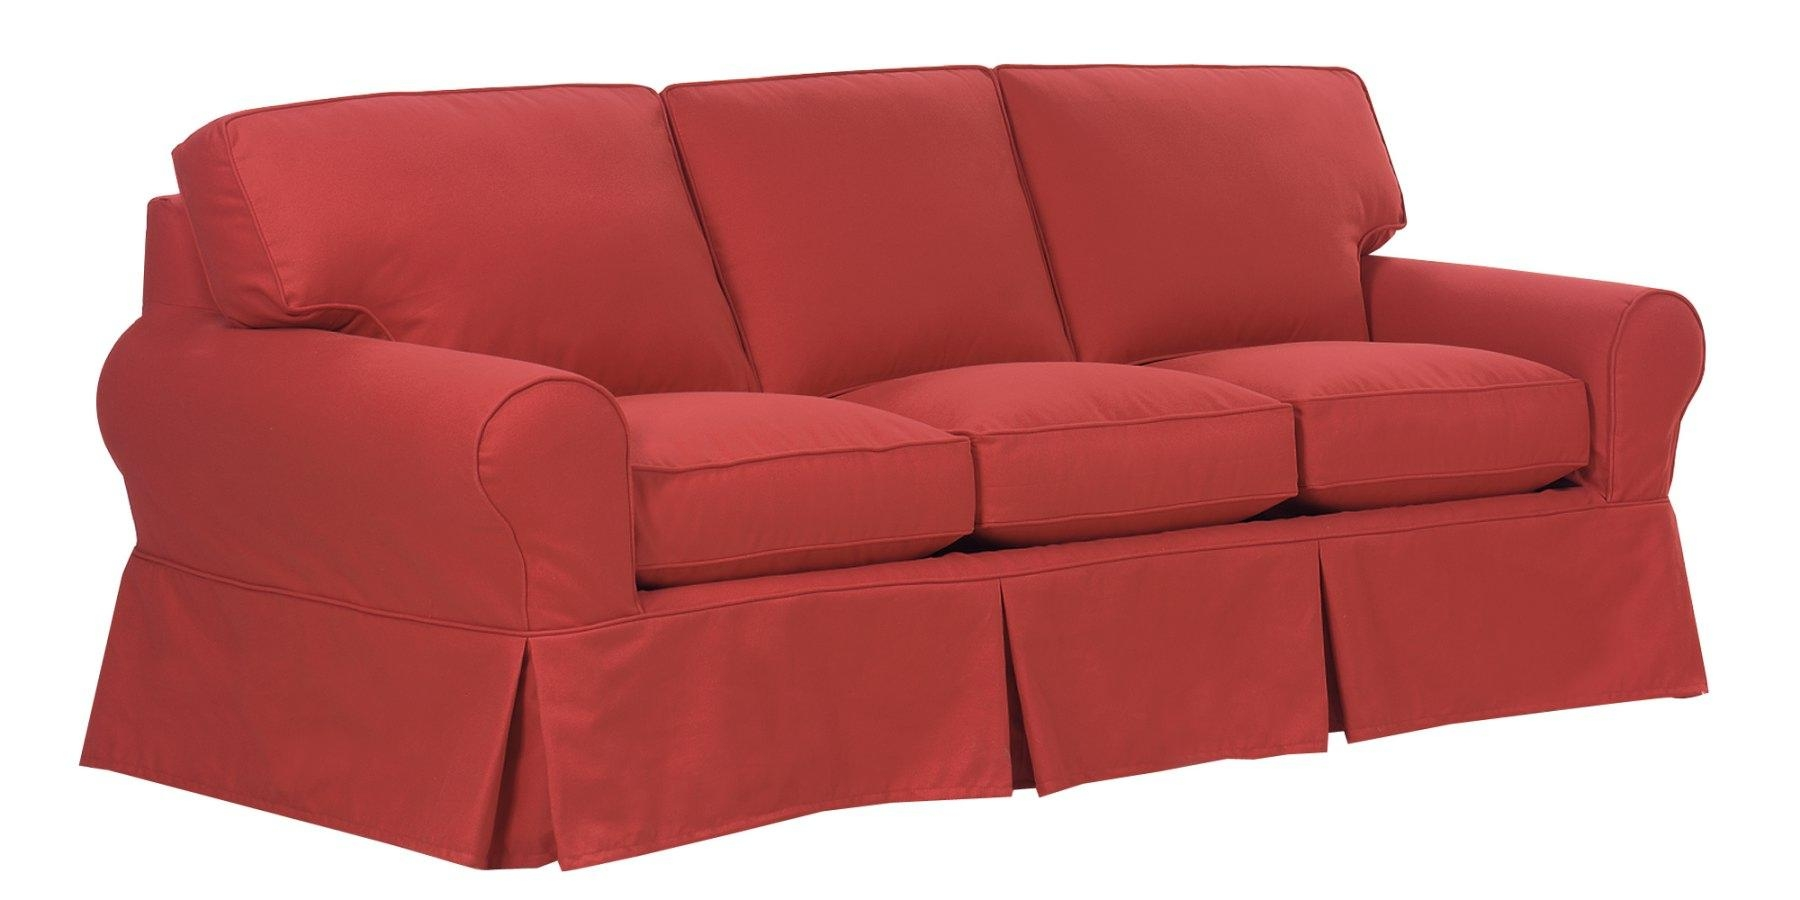 Comfortable Slipcovered Furniture, Slipcover Sofas, Couches For Slipcovers For Sofas And Chairs (View 4 of 20)